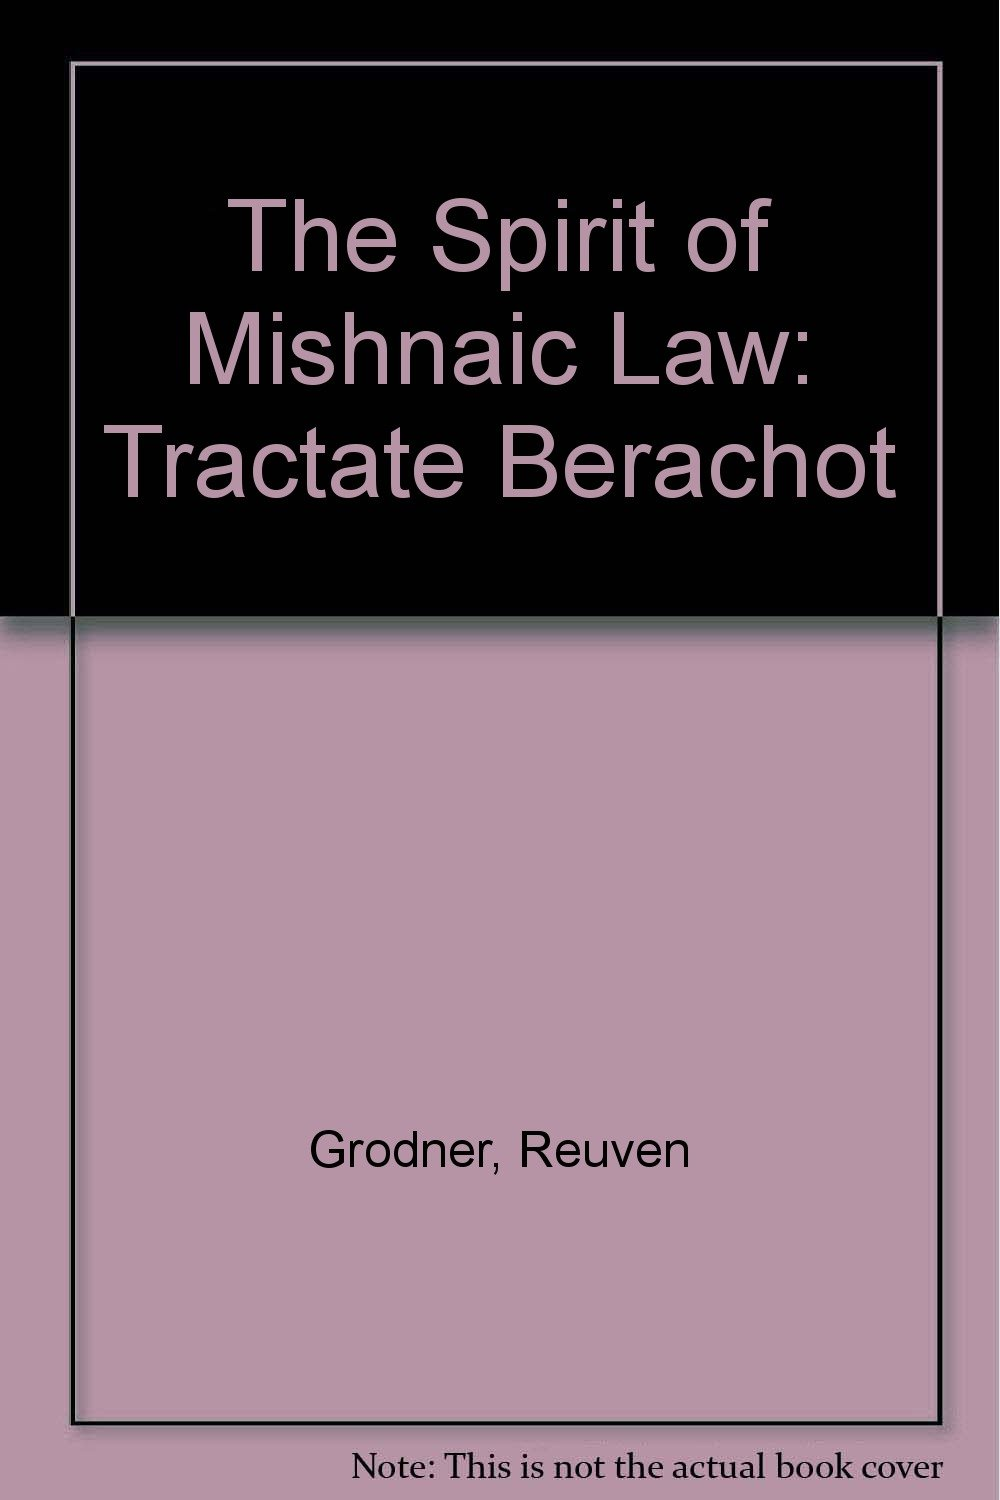 The Spirit of Mishnaic Law: Tractate Berachot (2 Volumes) (English and Hebrew Edition)